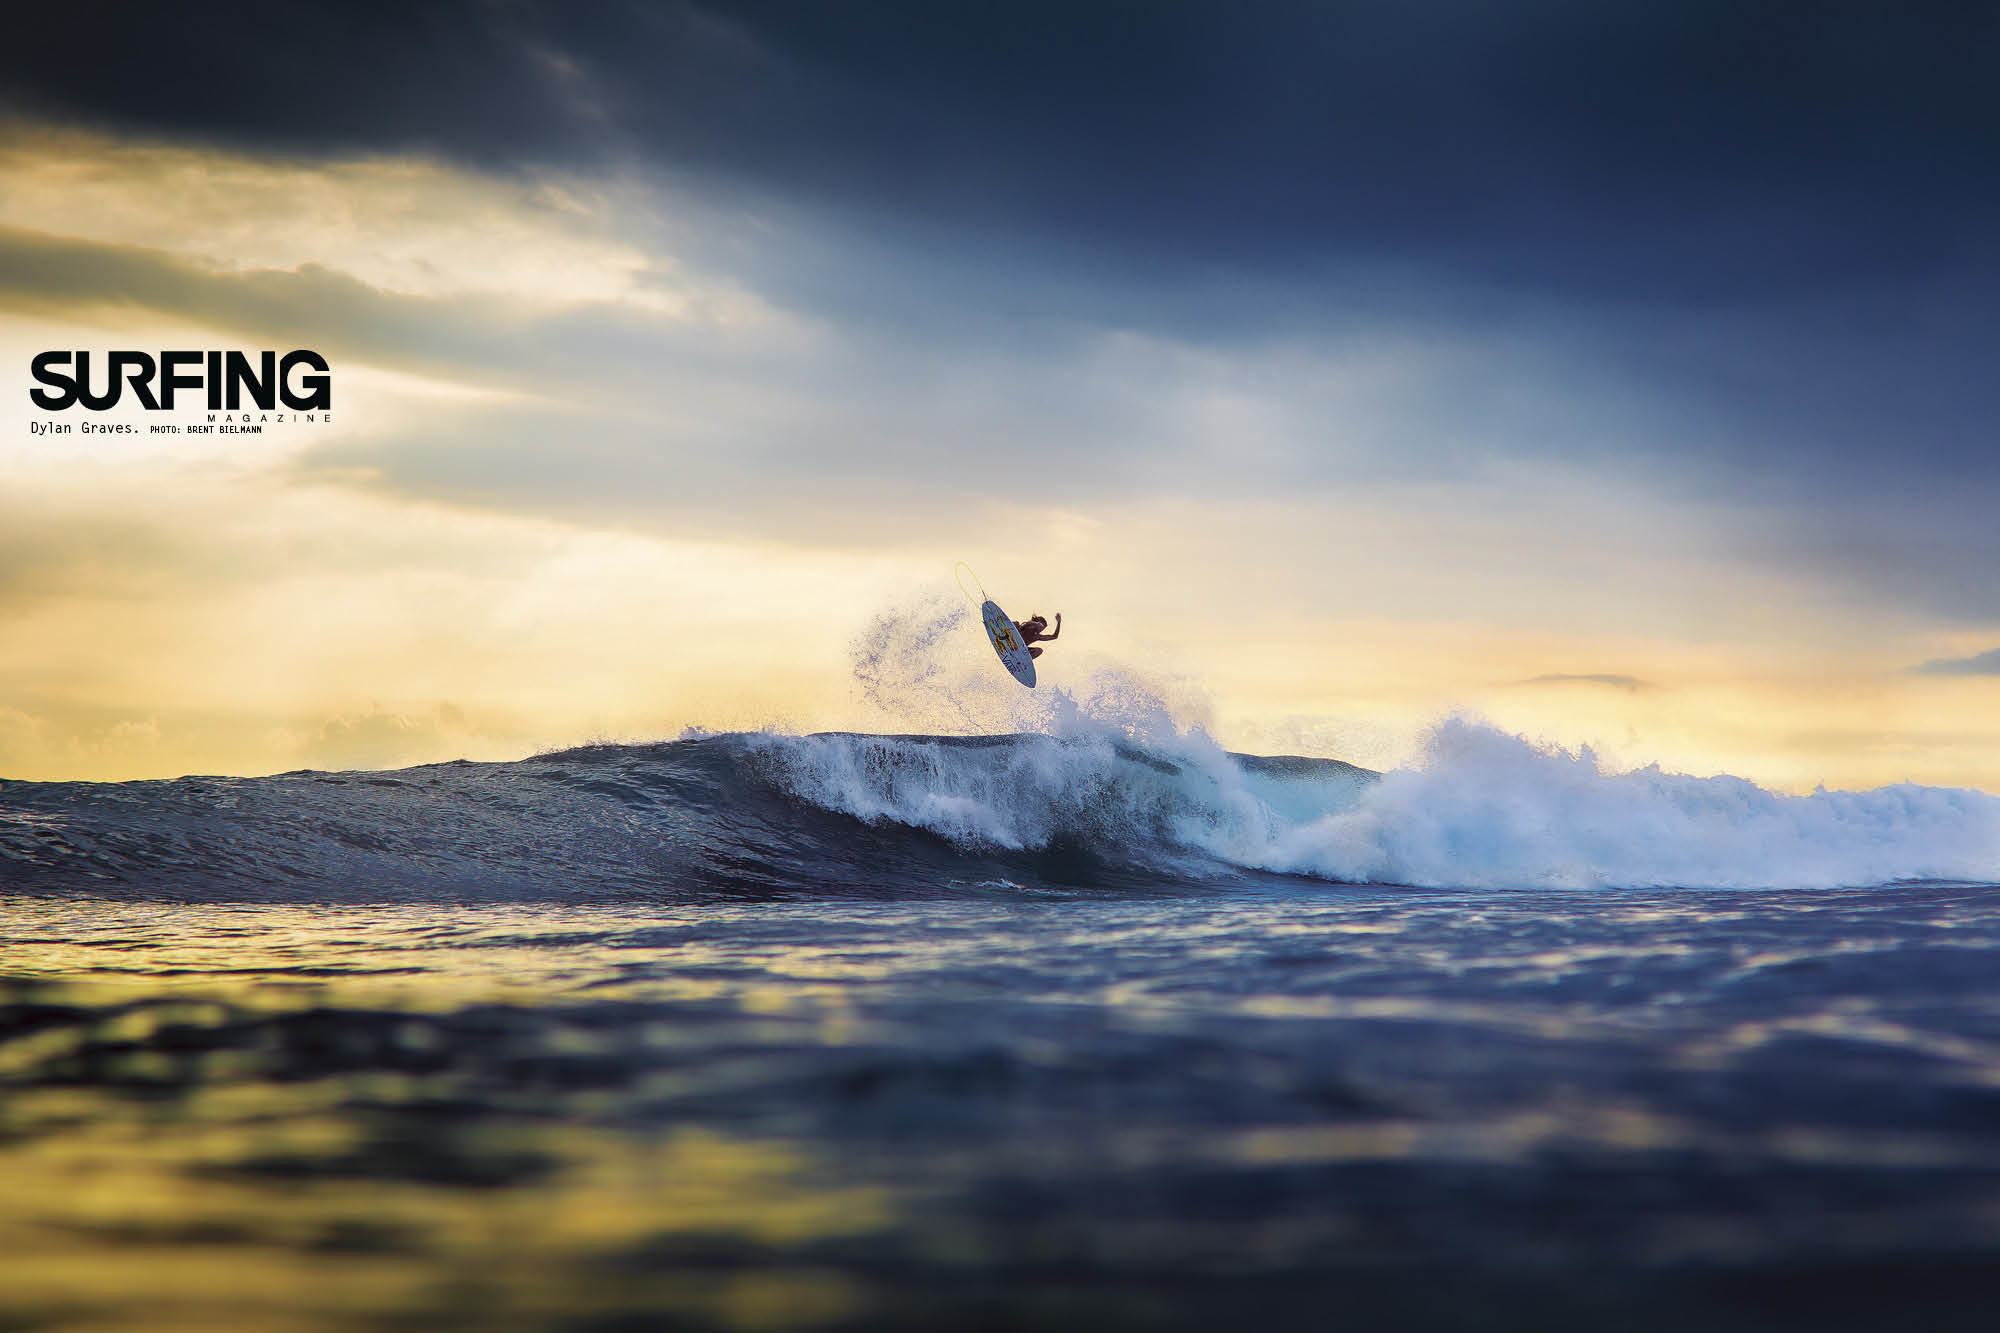 surfing magazine wallpapers (67+ images)